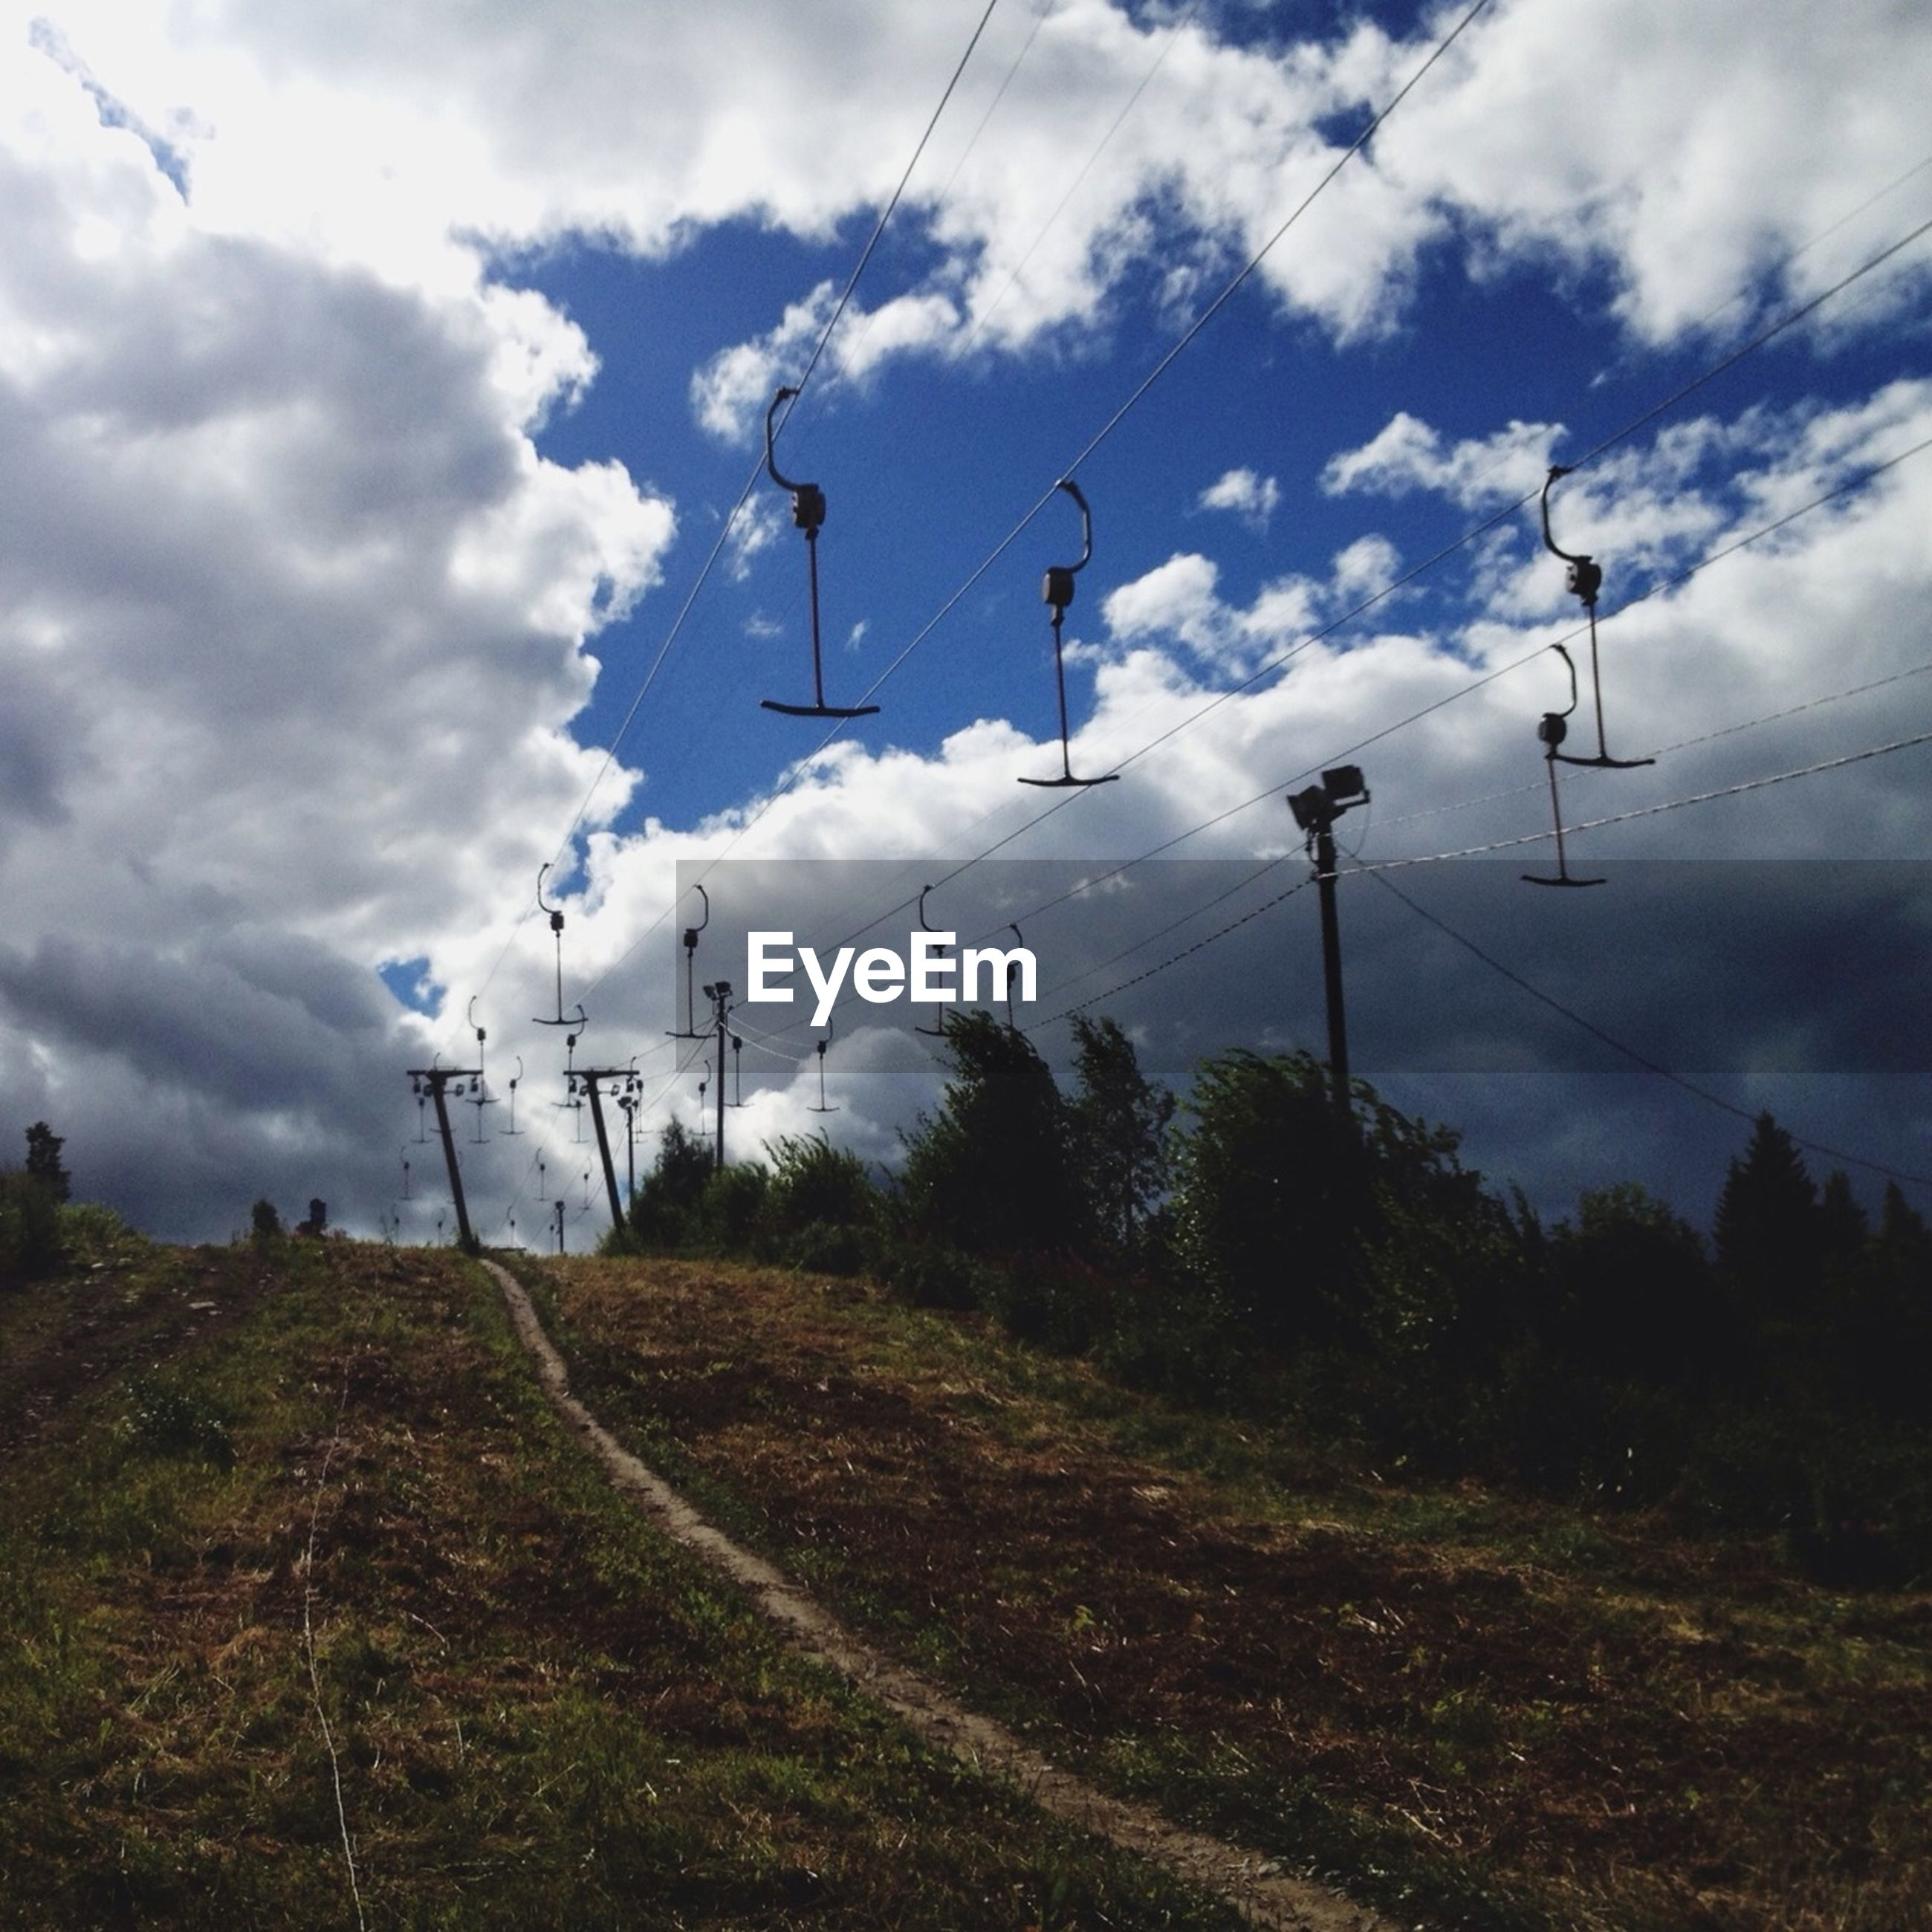 sky, cloud - sky, cloudy, power line, electricity pylon, electricity, fuel and power generation, cloud, landscape, field, transportation, power supply, technology, tranquility, connection, nature, cable, tranquil scene, day, low angle view